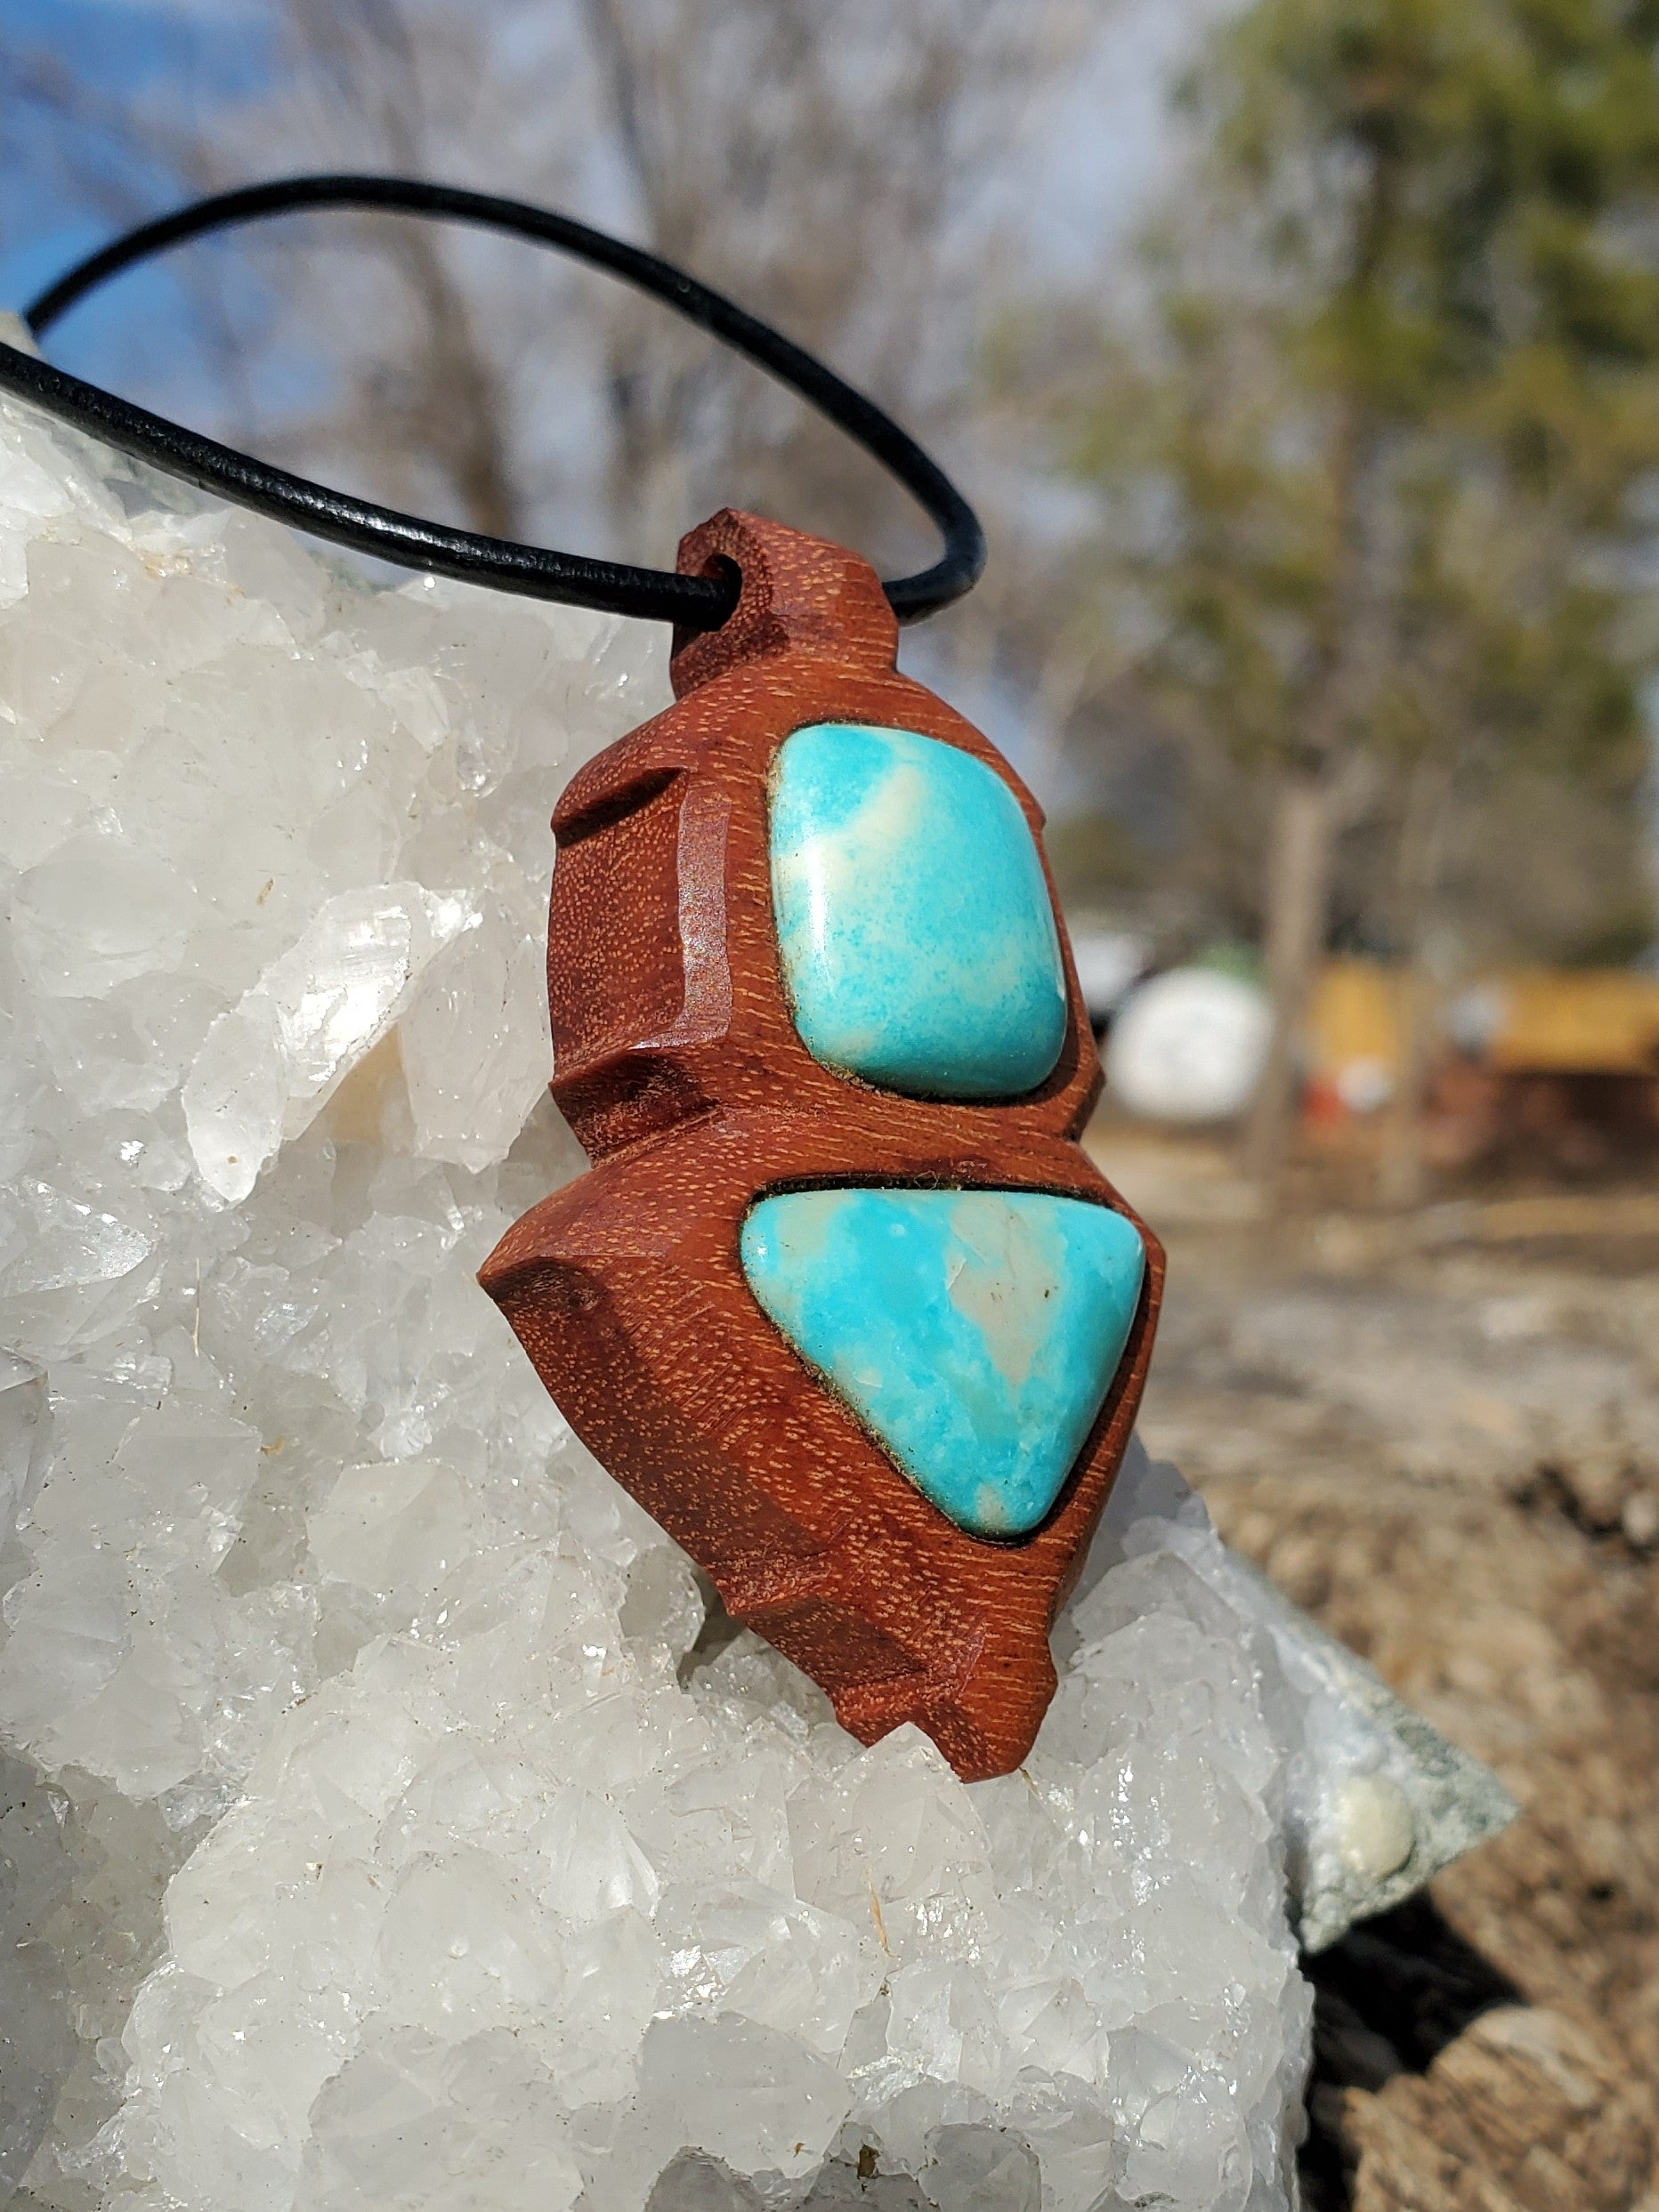 Turquoise in Tigerwood